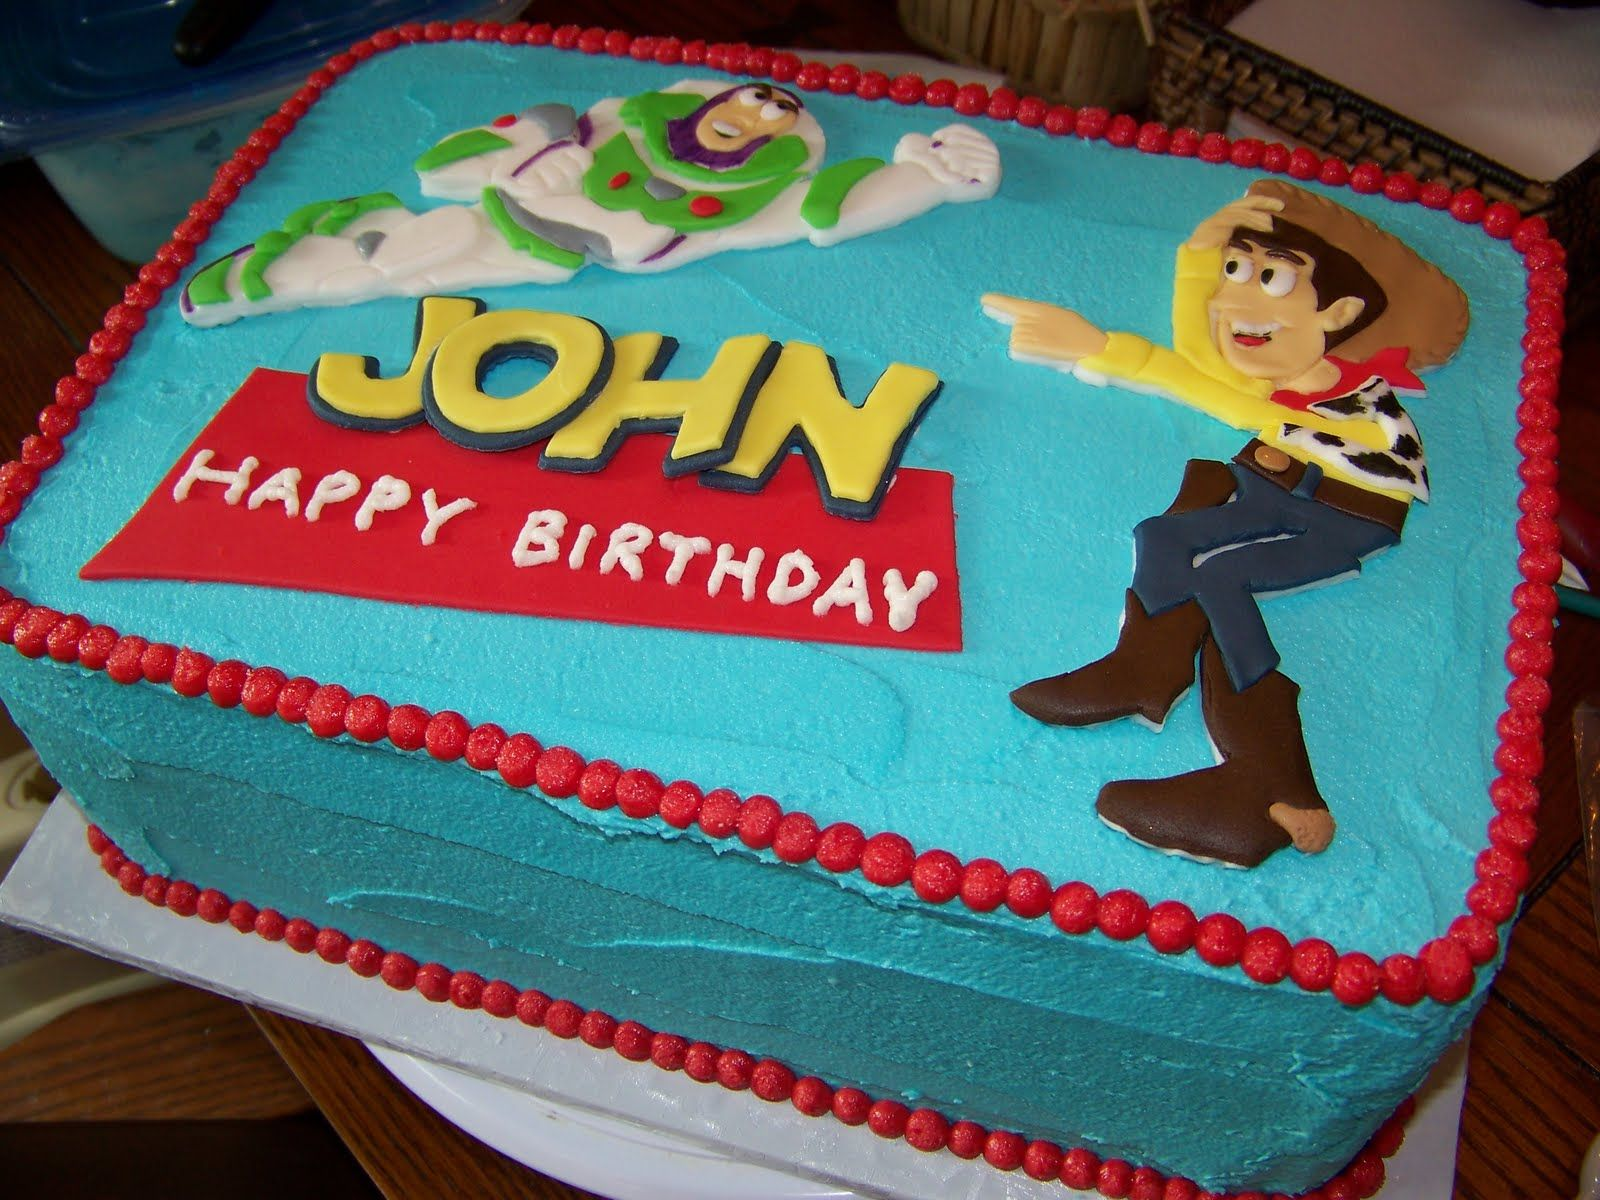 Jessie from toy story bedding - Simple Toy Story Cakes For A Simple Sheet Cake